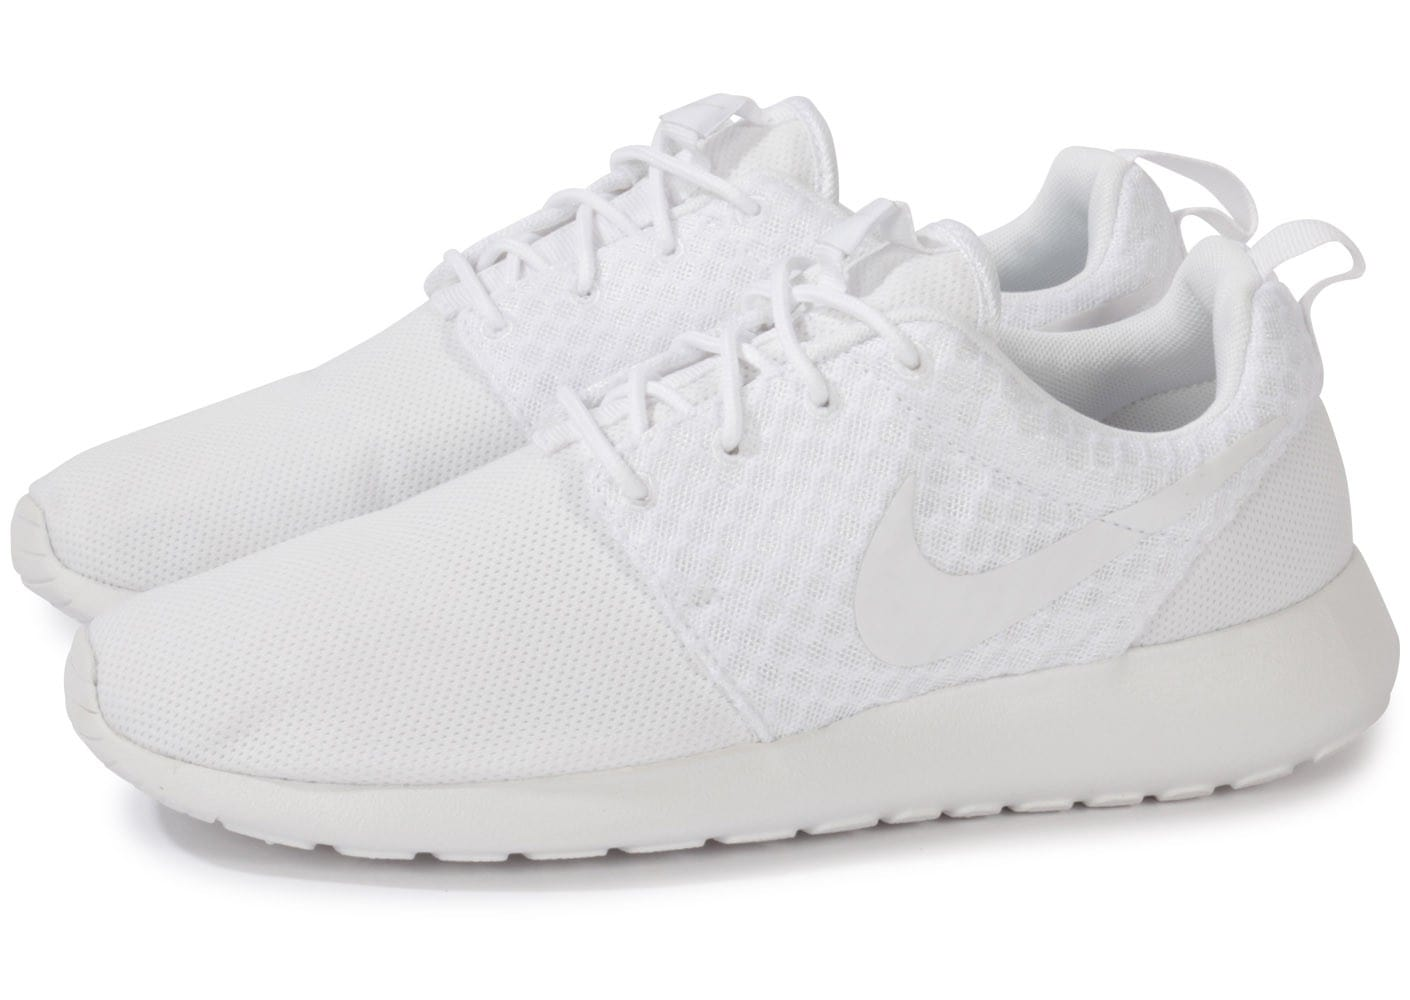 nike roshe run blanche chaussures homme chausport. Black Bedroom Furniture Sets. Home Design Ideas